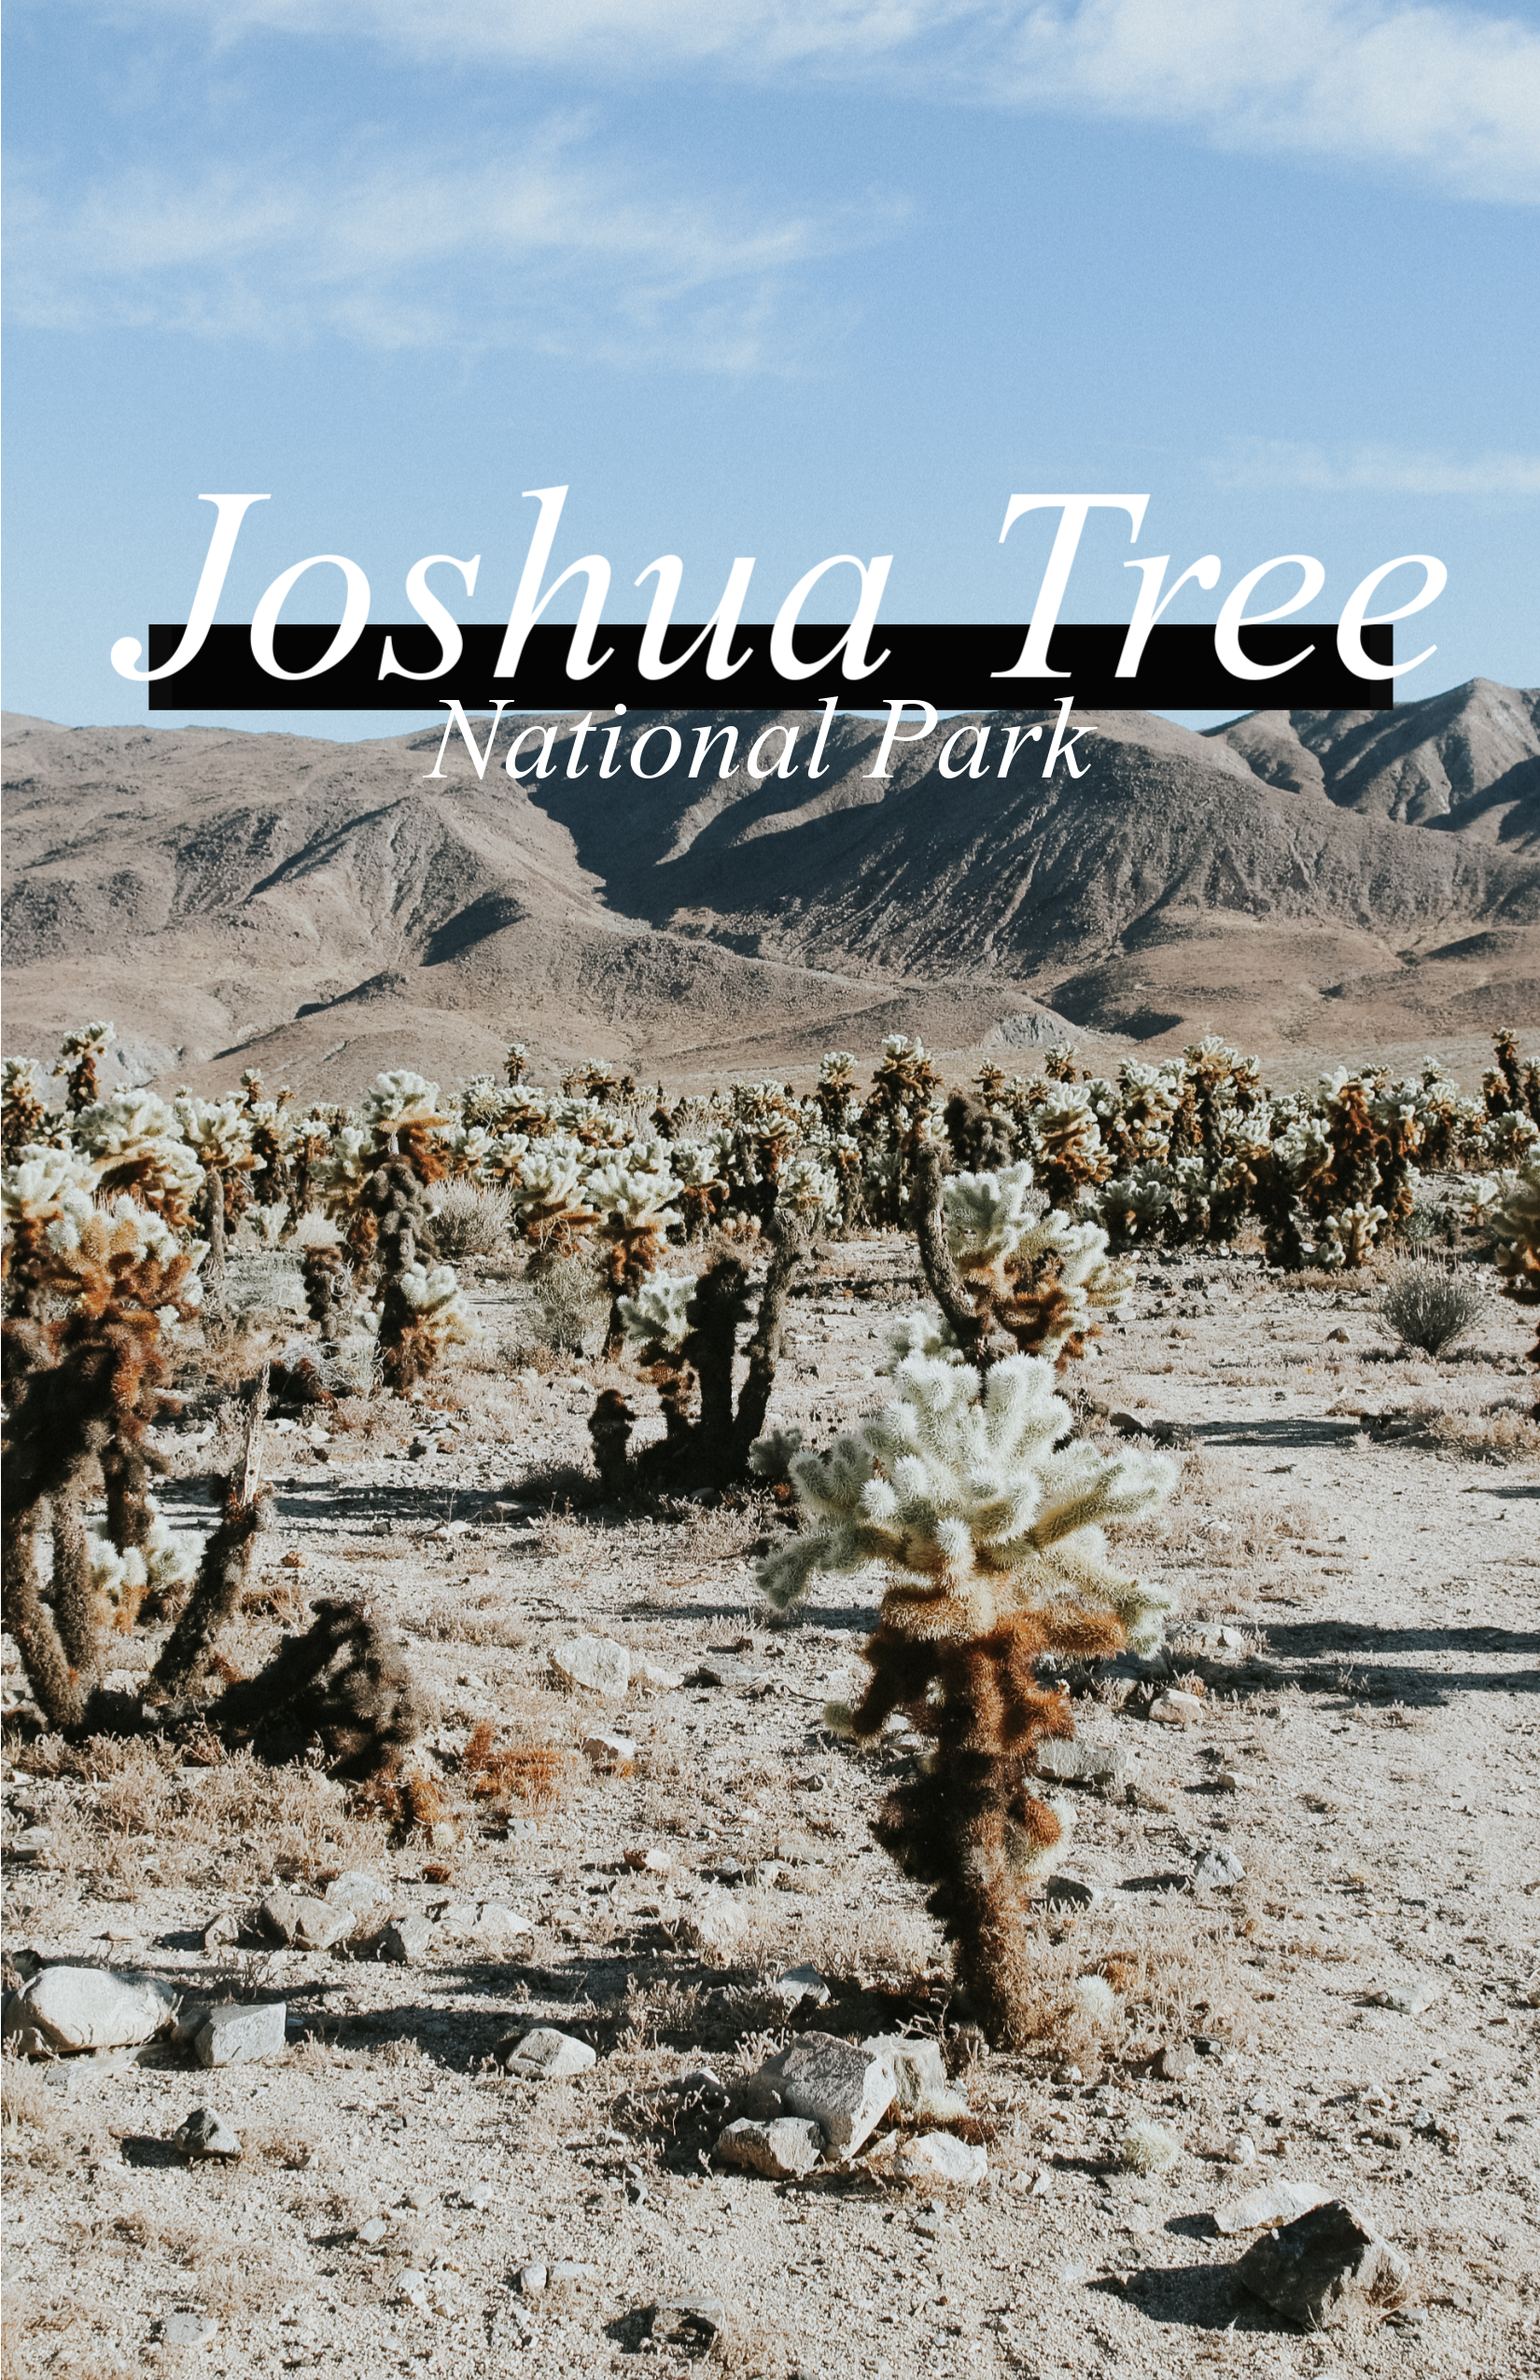 Day 1: Pioneertown and Joshua Tree National Park